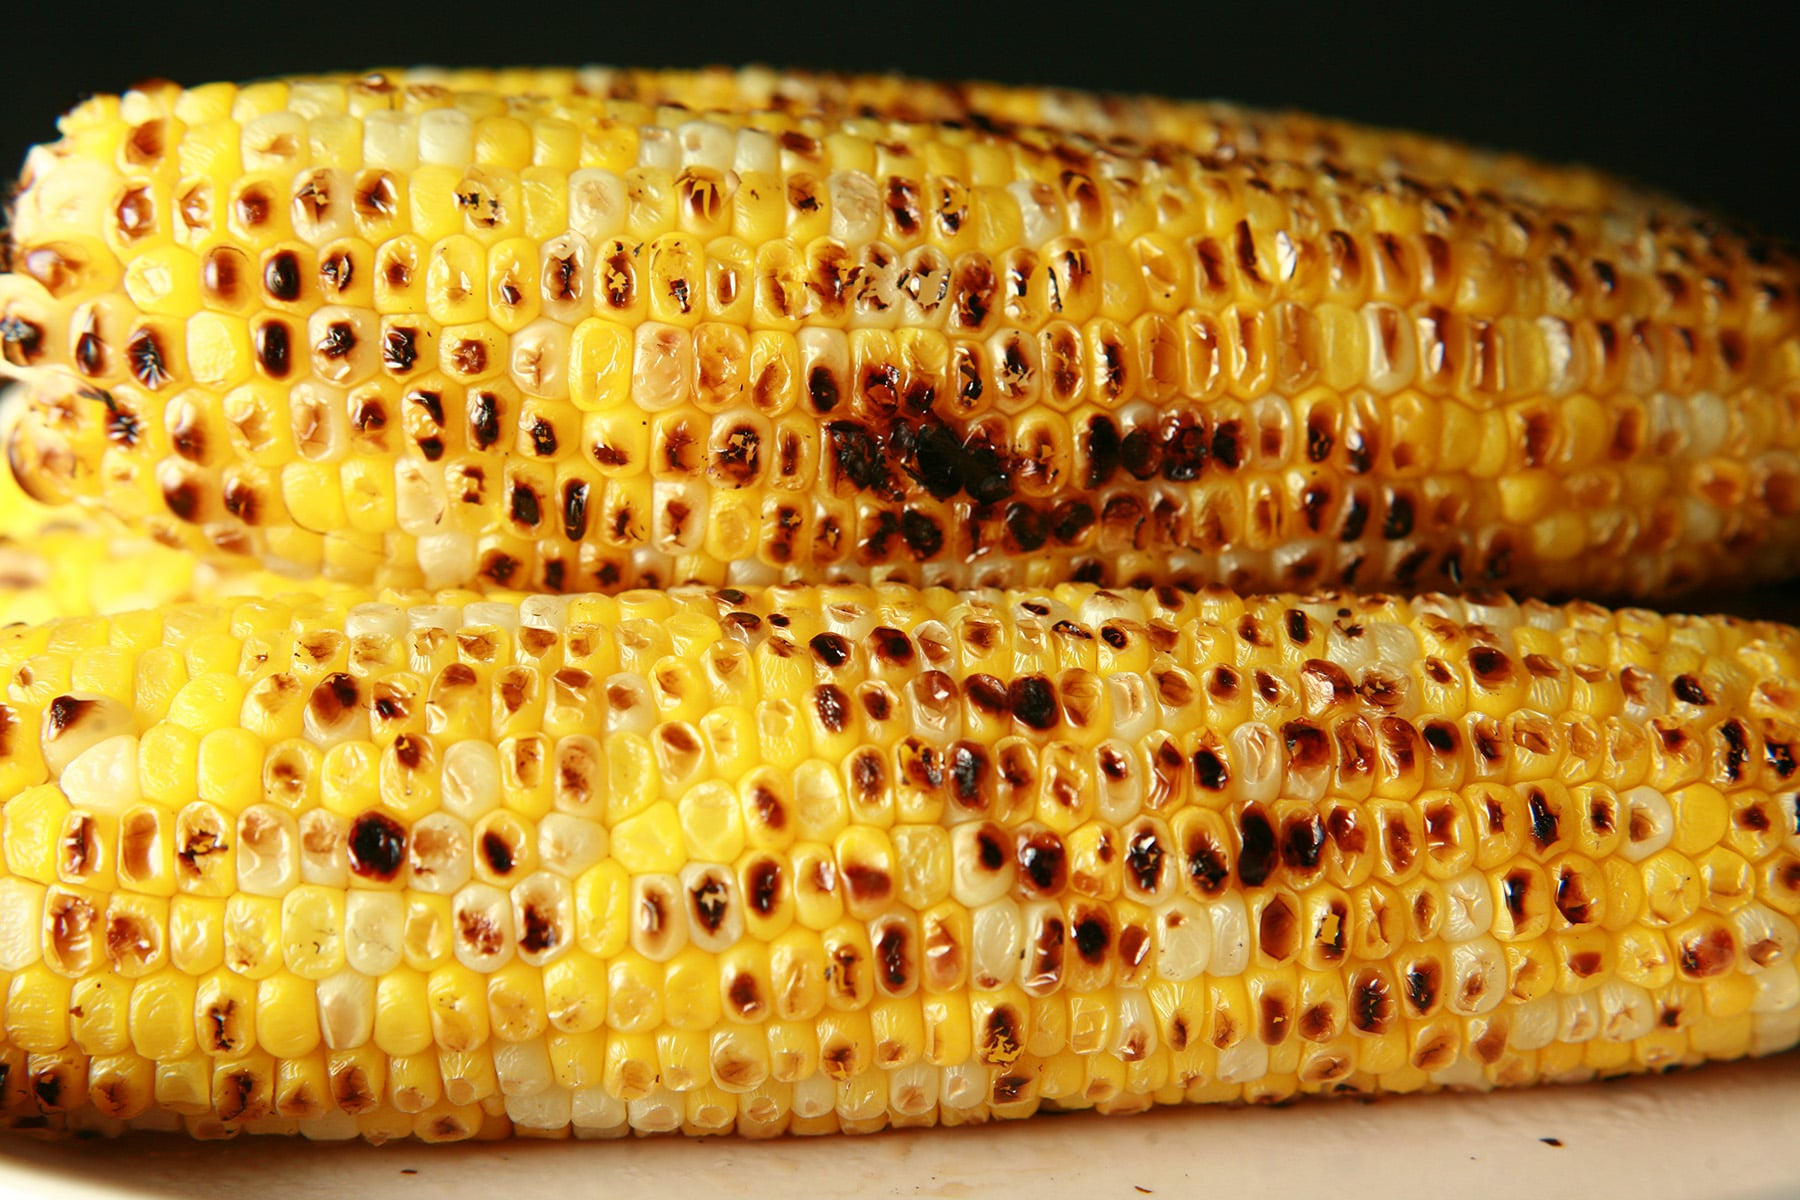 A pile of 5 ears of grilled corn on the cob, on a beige plate.